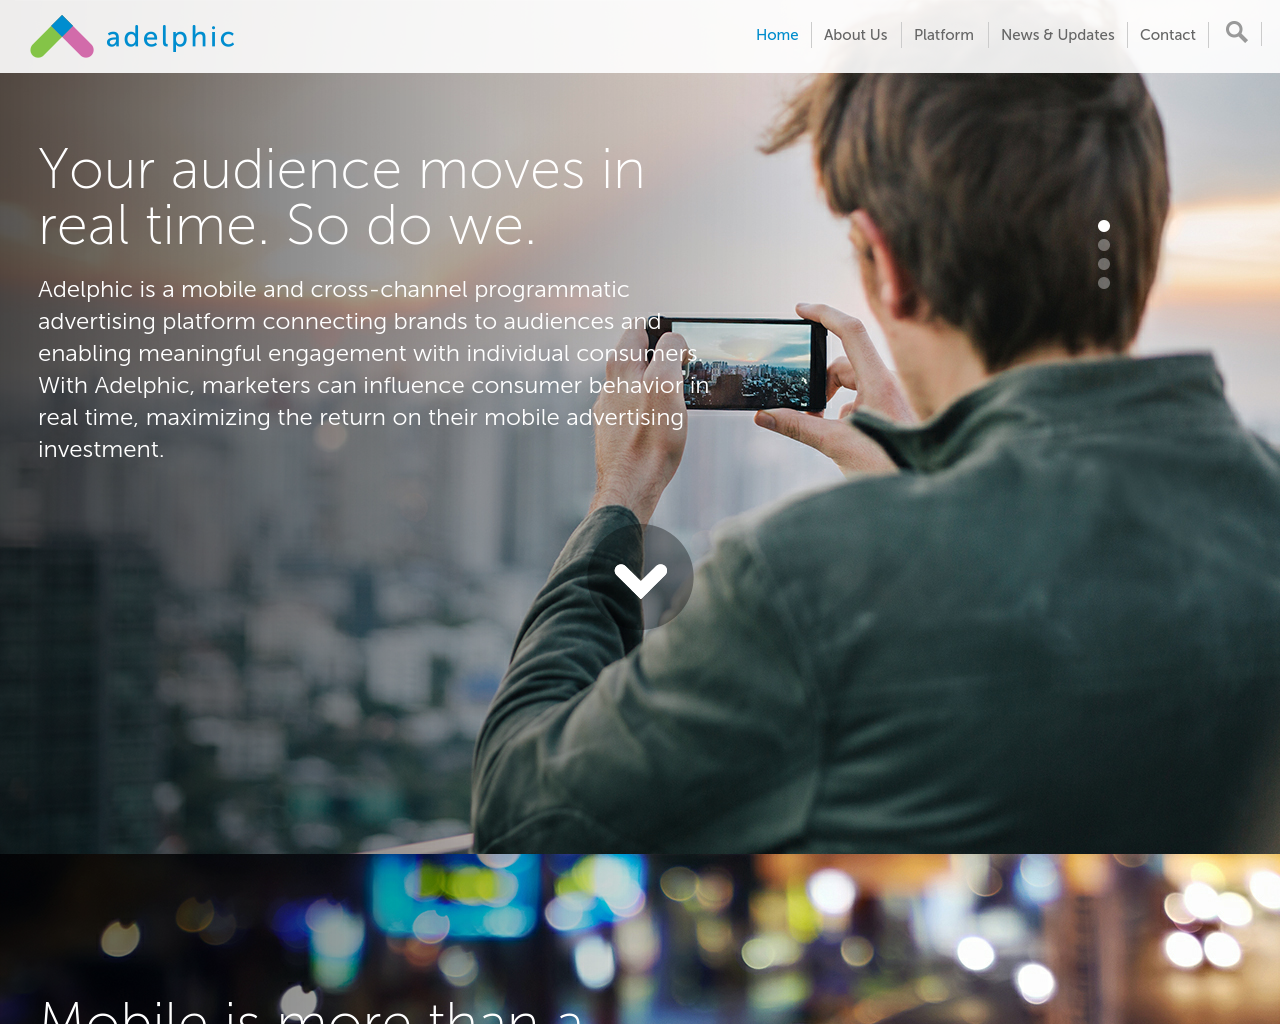 Adelphic-Mobile-Advertising-Reviews-Pricing